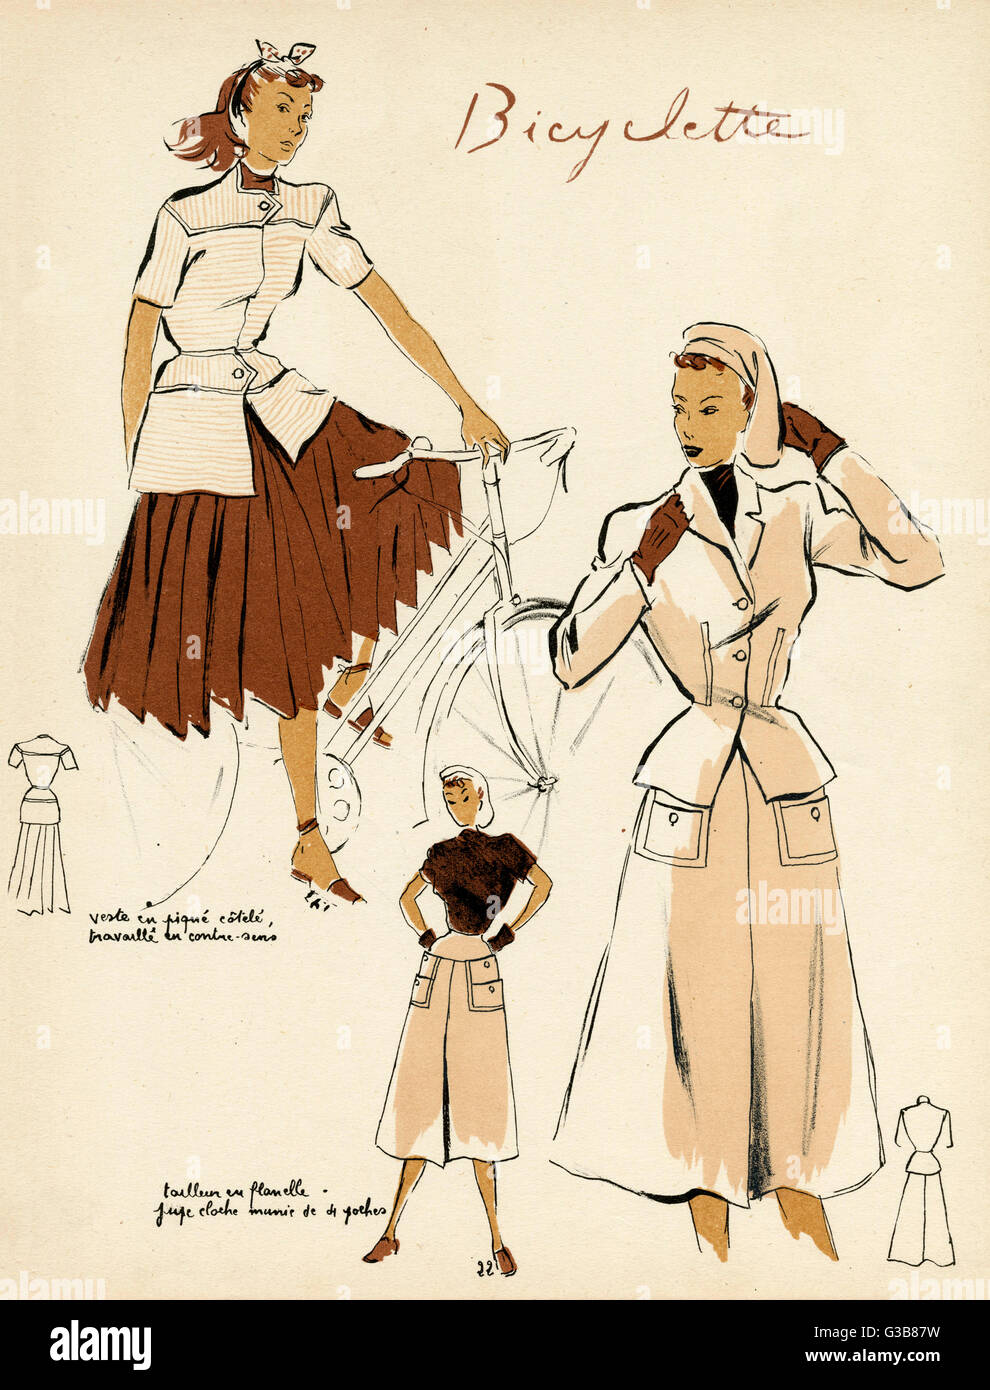 0e7c4d8623 Fashions for bicycling include a pleated skirt & short sleeved jacket;  also an '